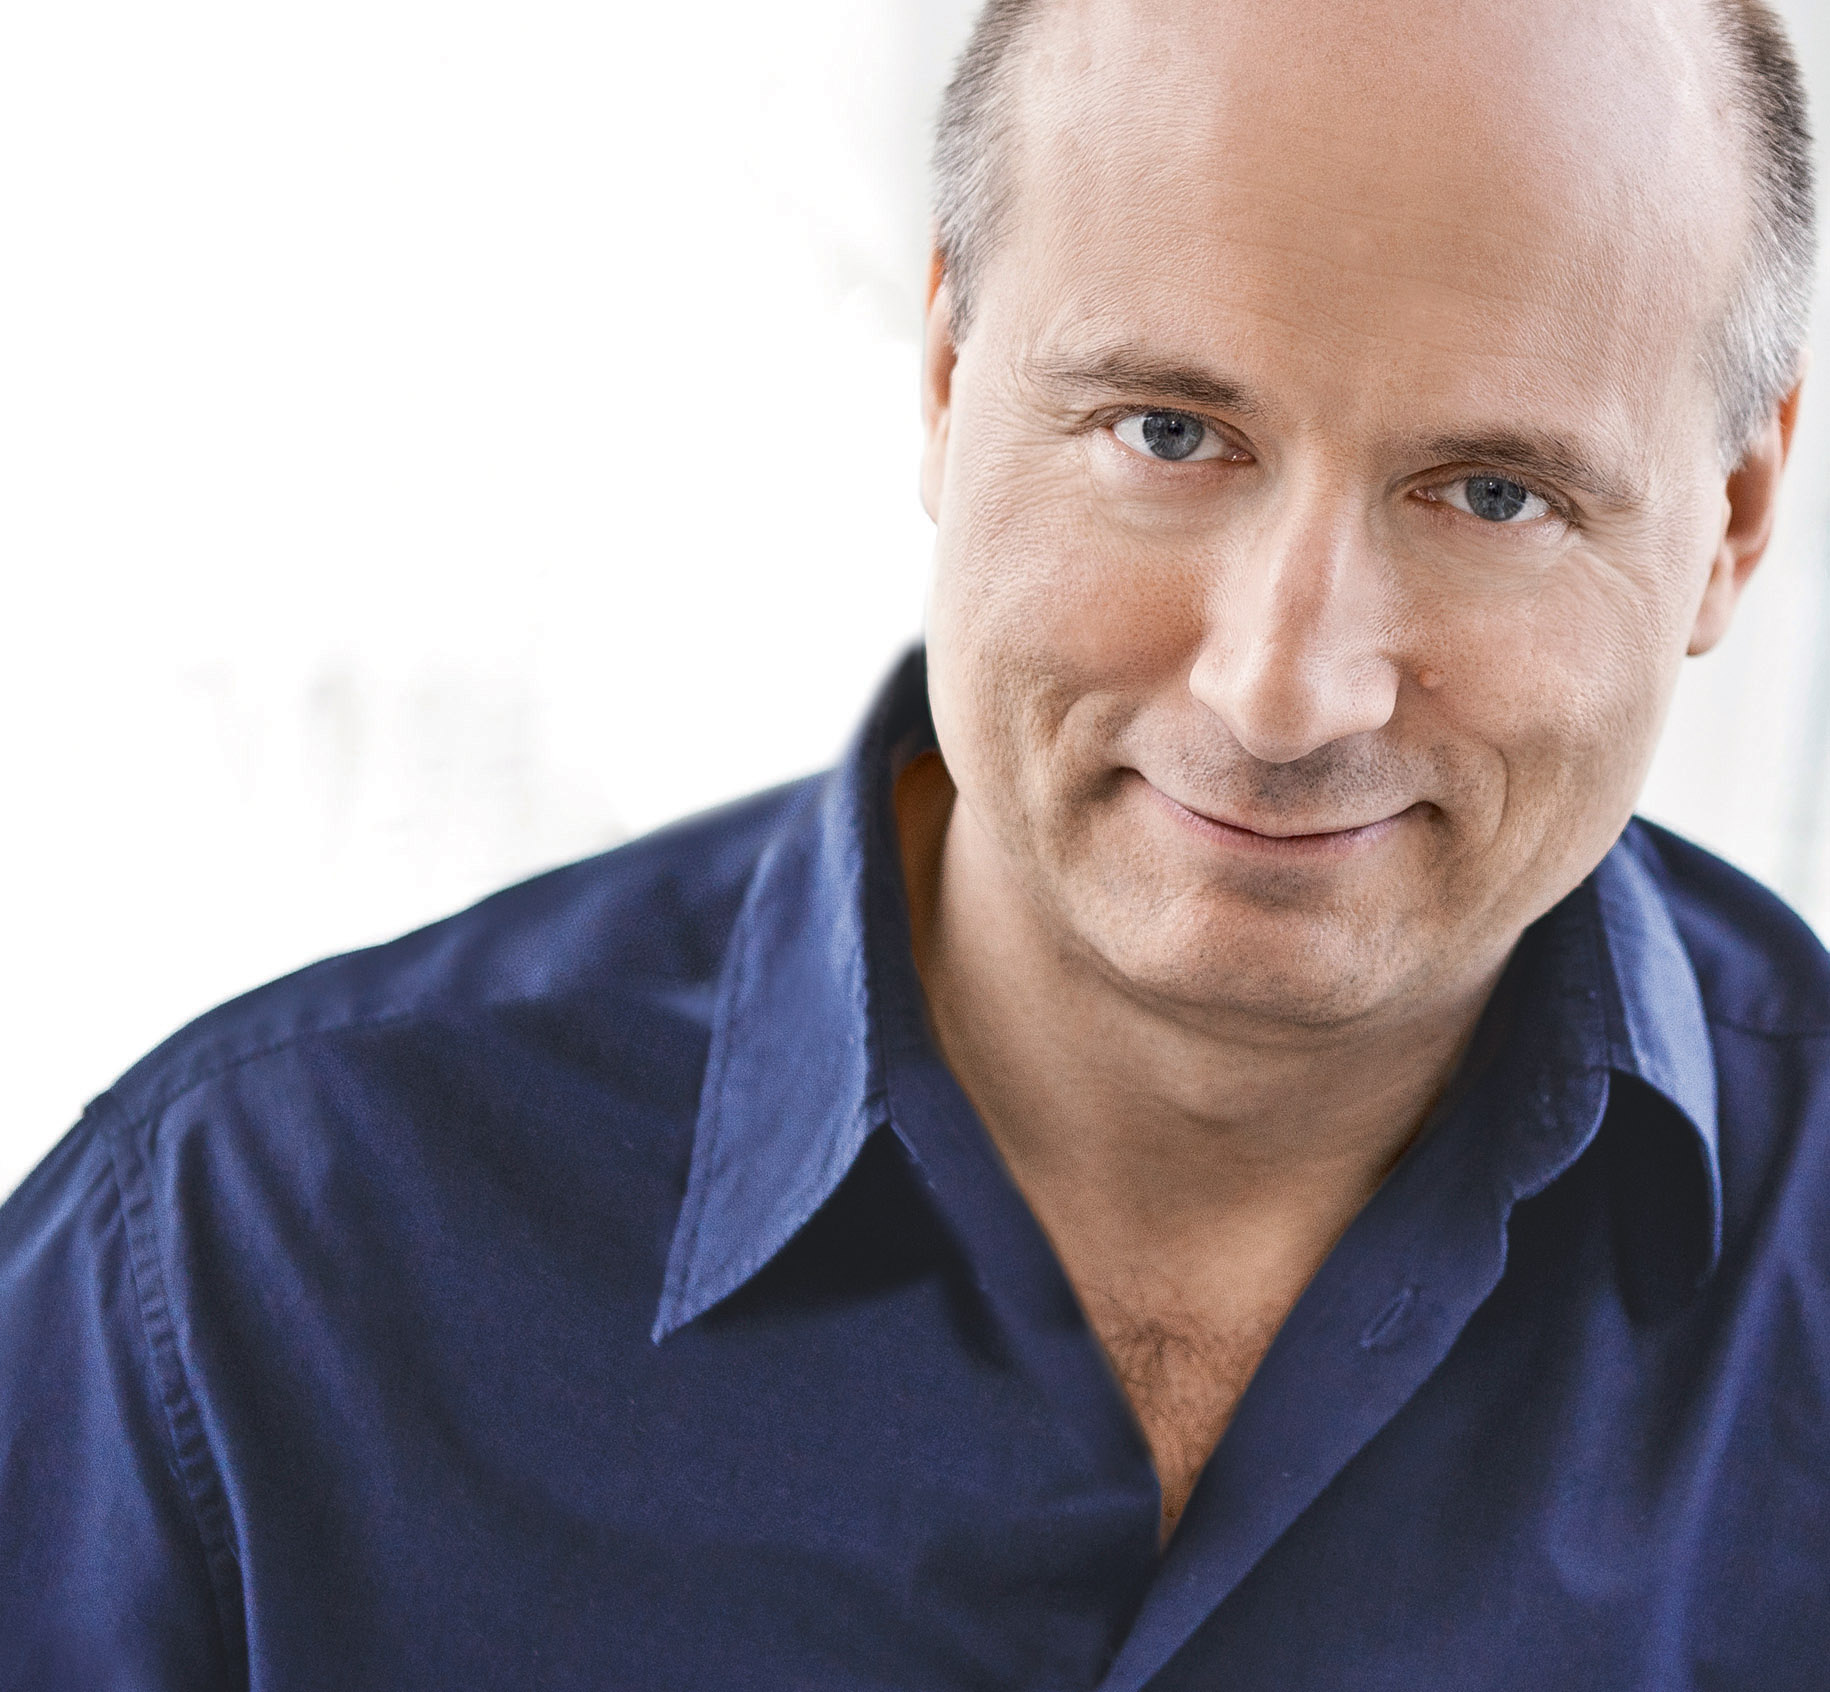 Paavo Järvi   - Chief Conductor of the NHK Symphony Orchestra Artistic Director of The Deutsche Kammerphilharmonie BremenFounder of Pärnu Music Festival, EstoniaChief Conductor of Tonhalle-Orchester Zürich (from 2019)Learn more© Jean Christophe Uhl